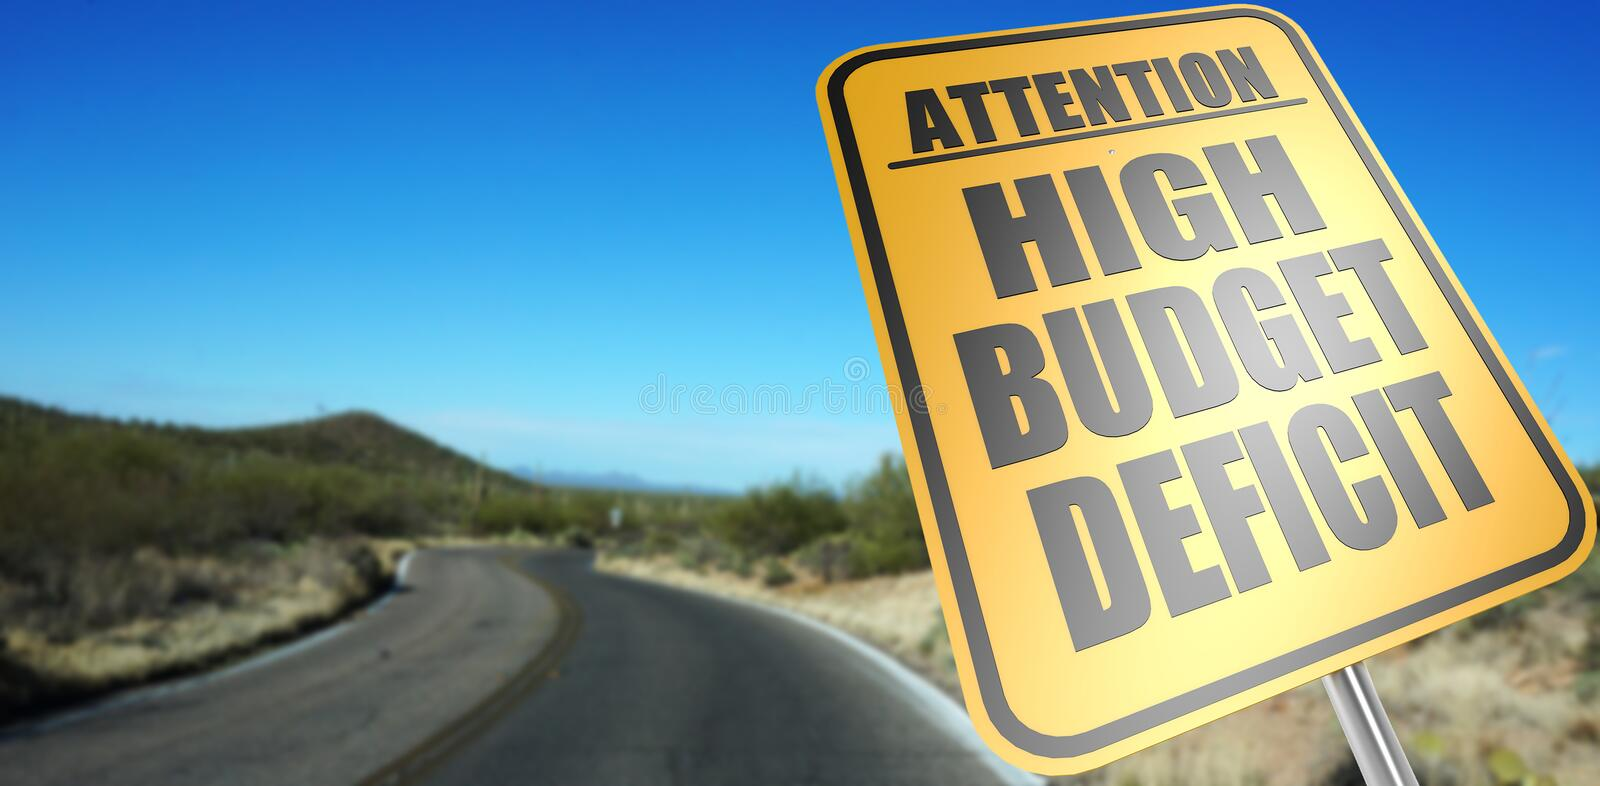 High budget deficit road sign royalty free stock image